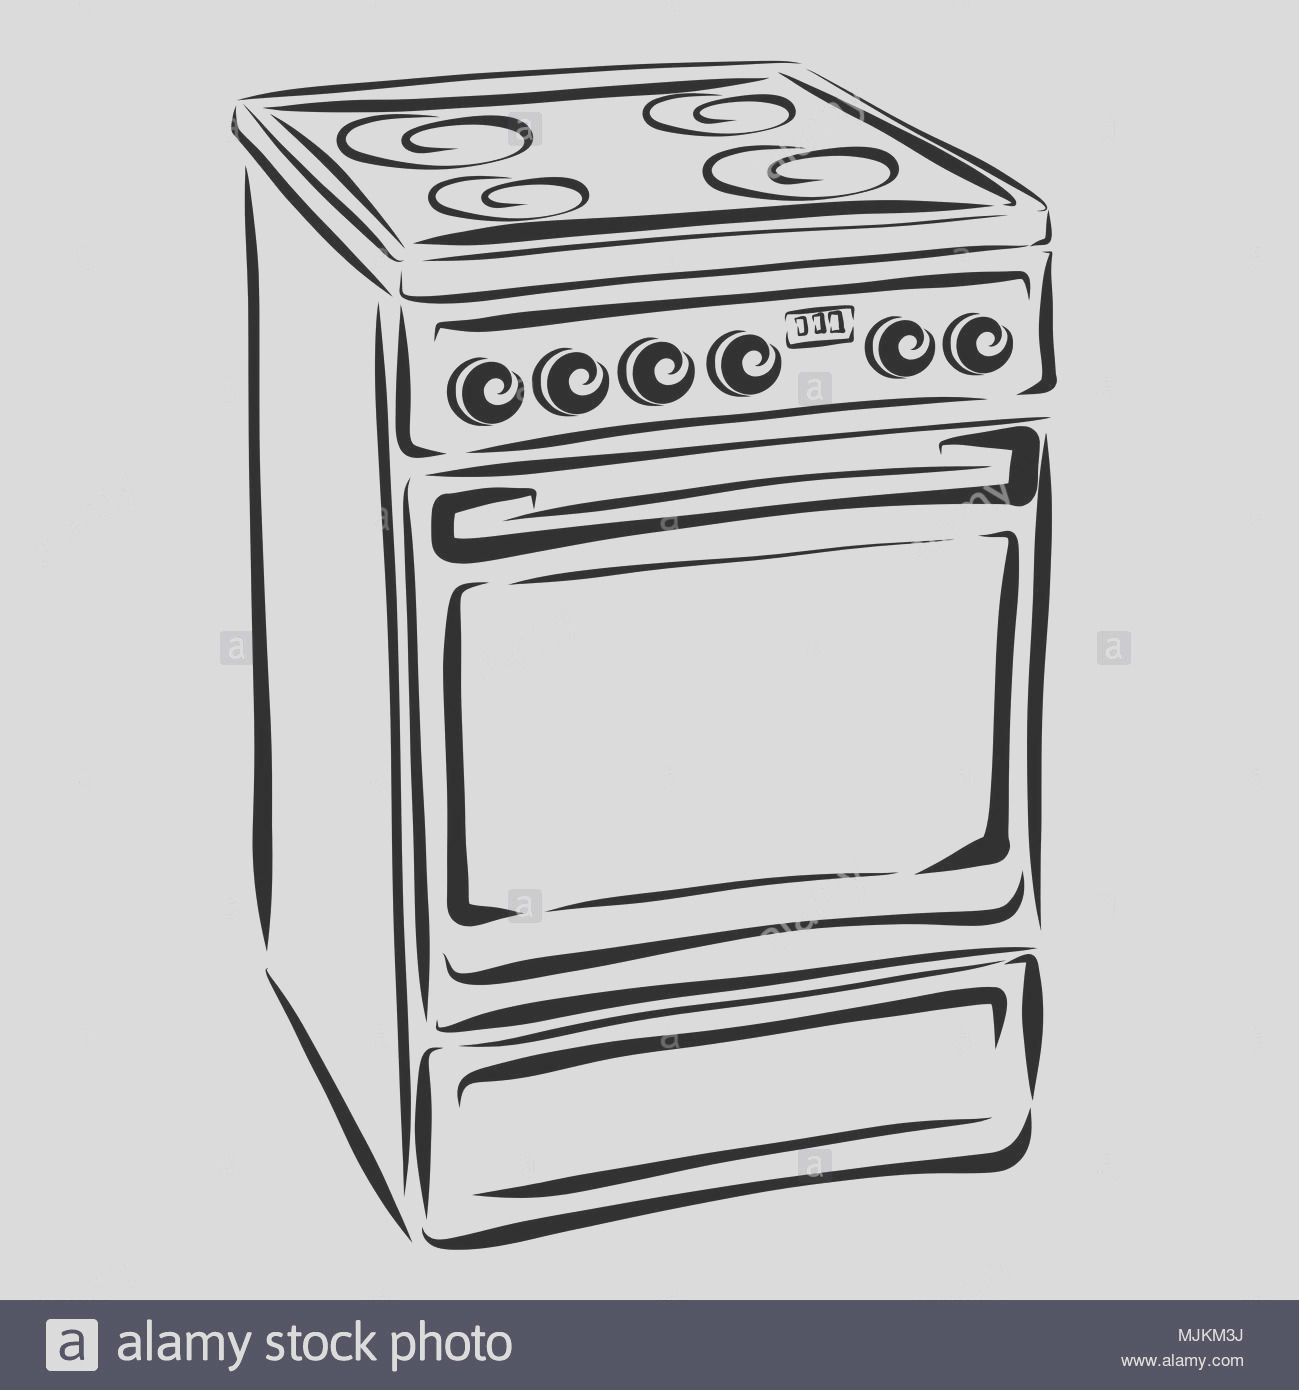 household appliances kitchen electric stove image